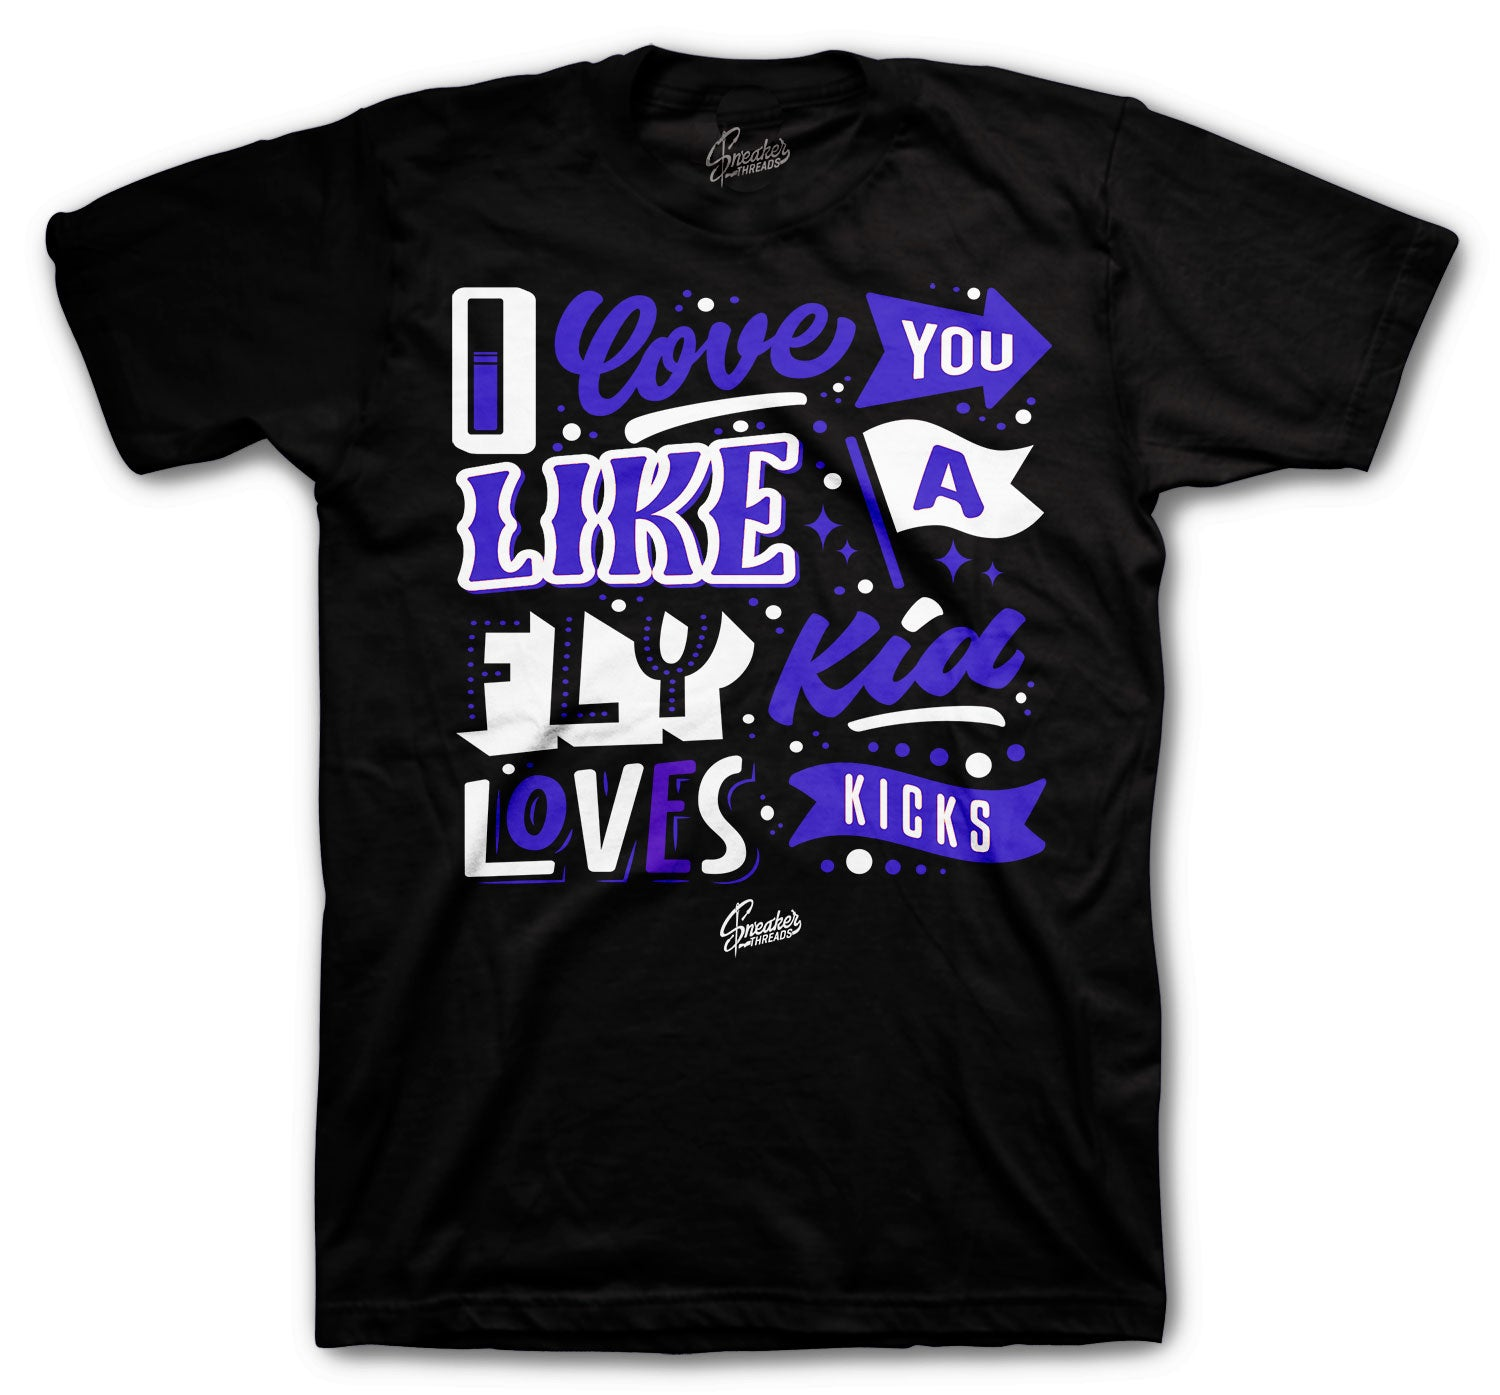 Jordan 11 Low Concord Love Kicks Shirt